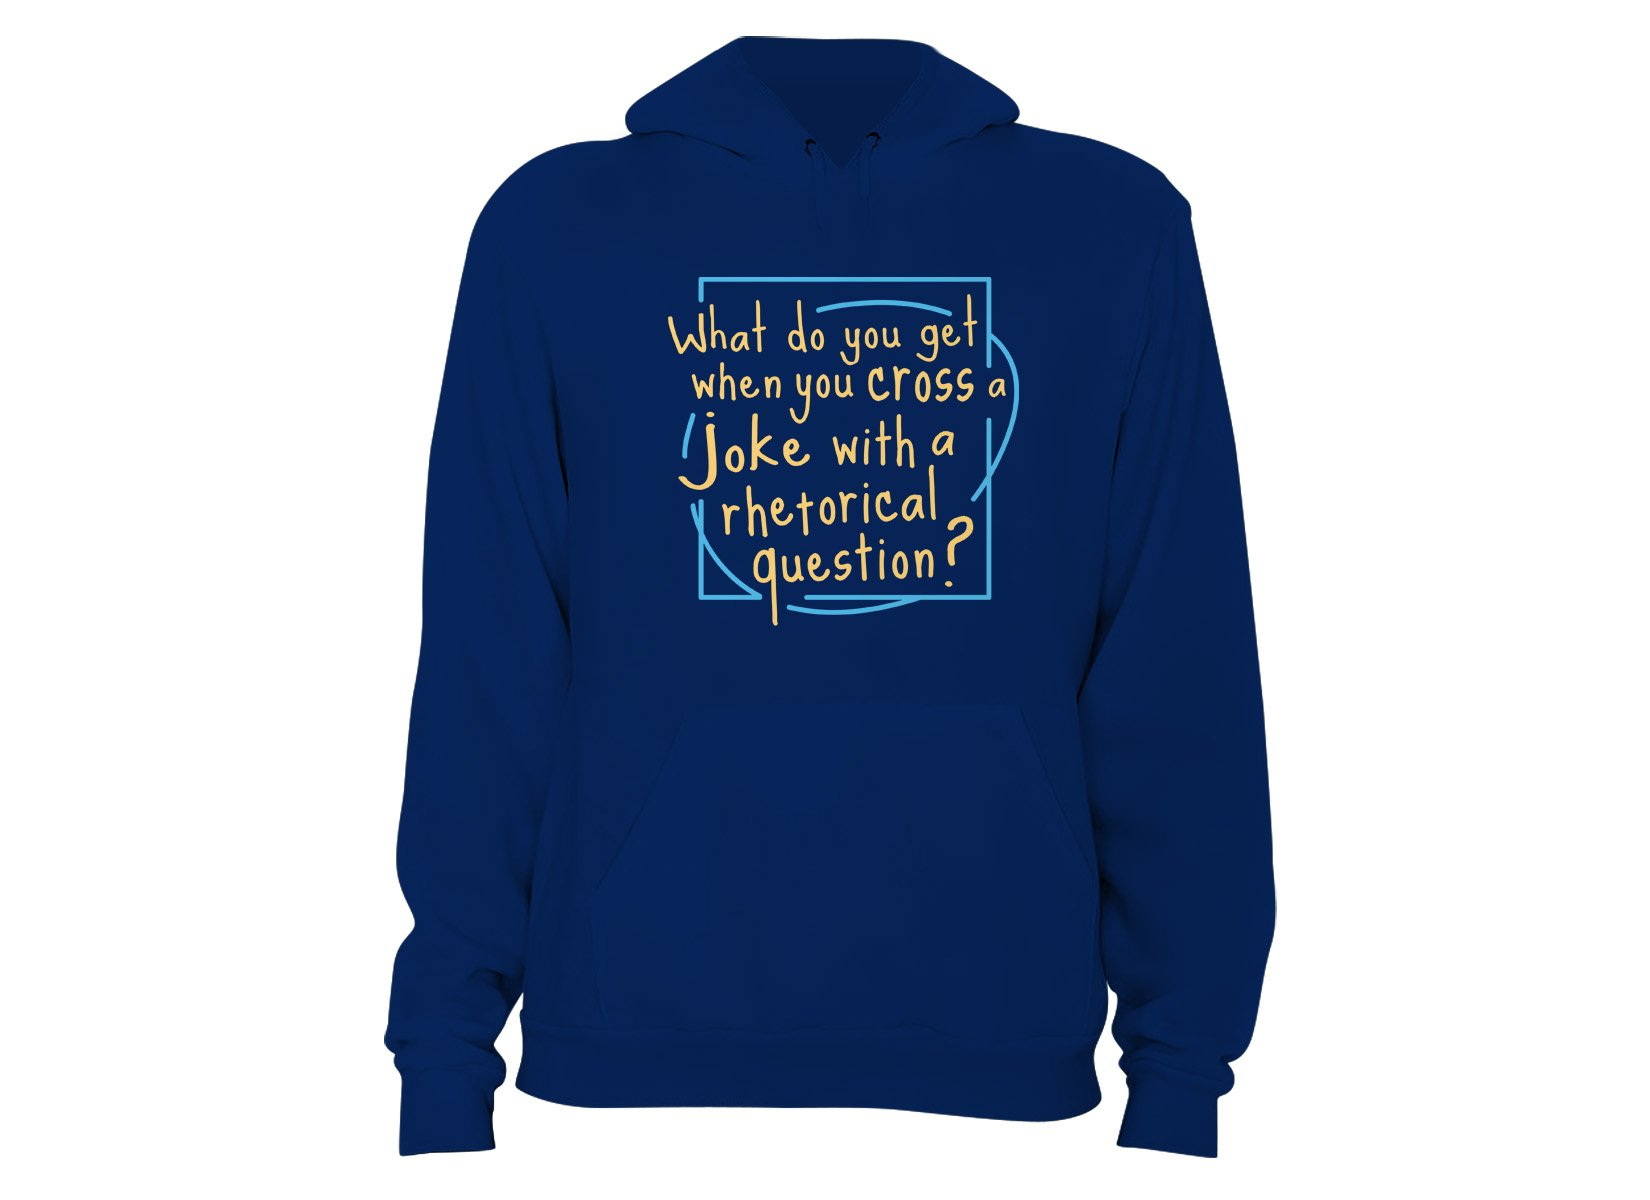 When You Cross A Joke With A Rhetorical Question? on Hoodie